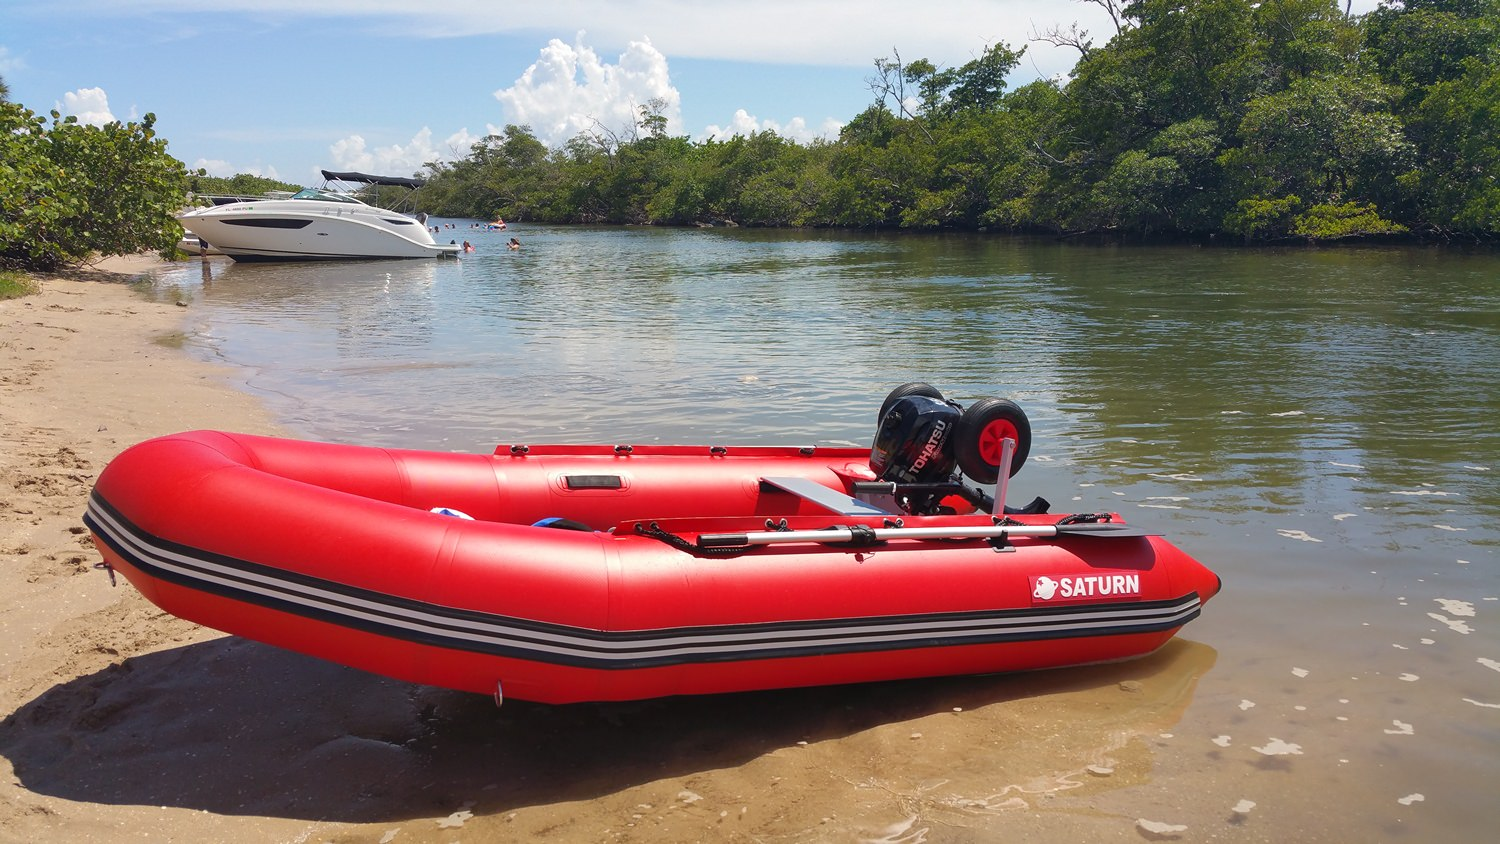 Inflatable Motor Boat Saturn Inflatable Boats